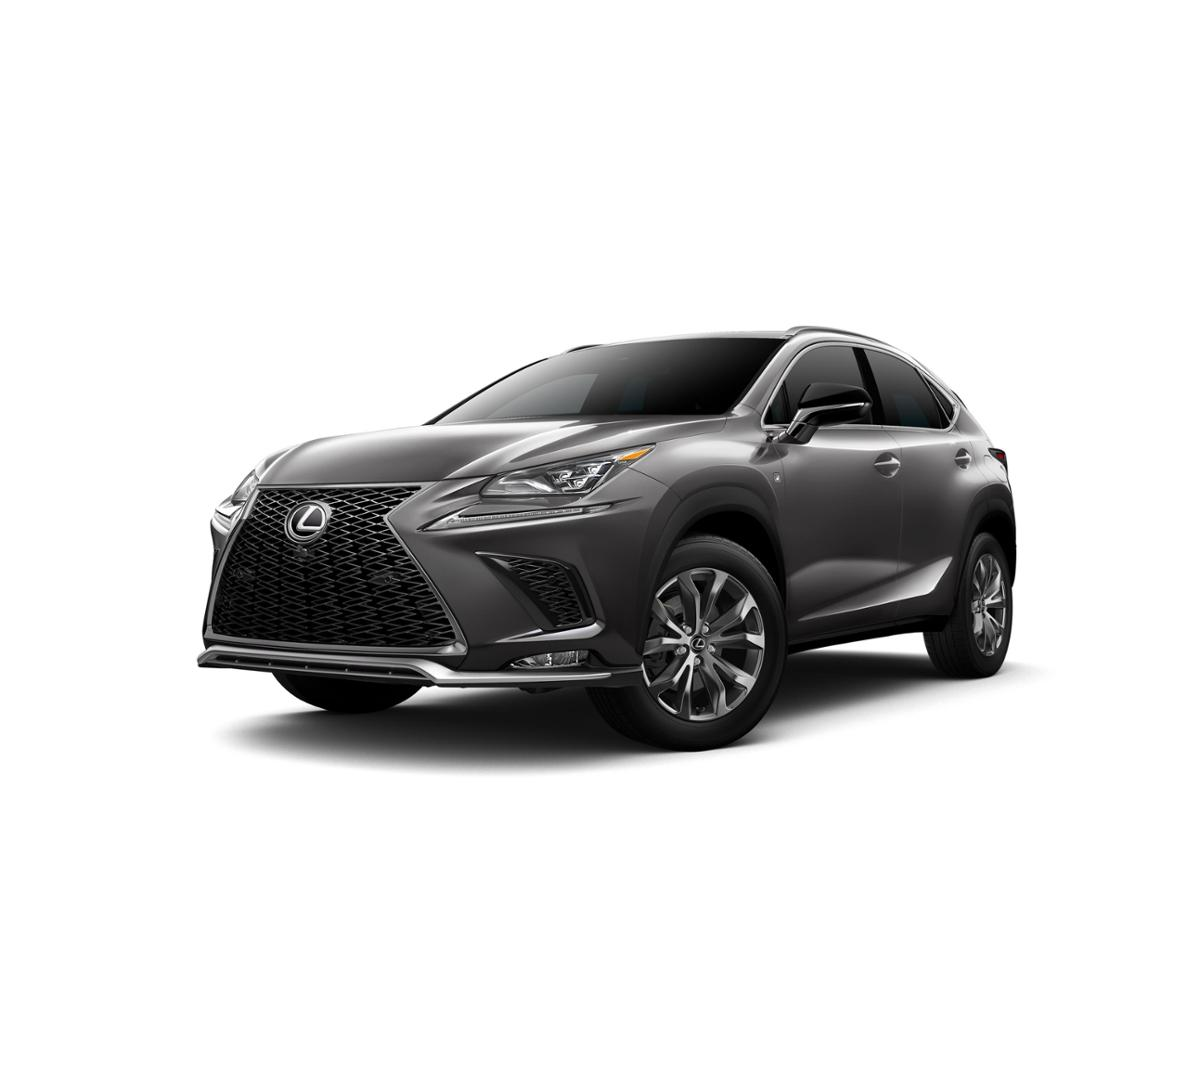 2019 Lexus NX 300 Vehicle Photo in Santa Barbara, CA 93105